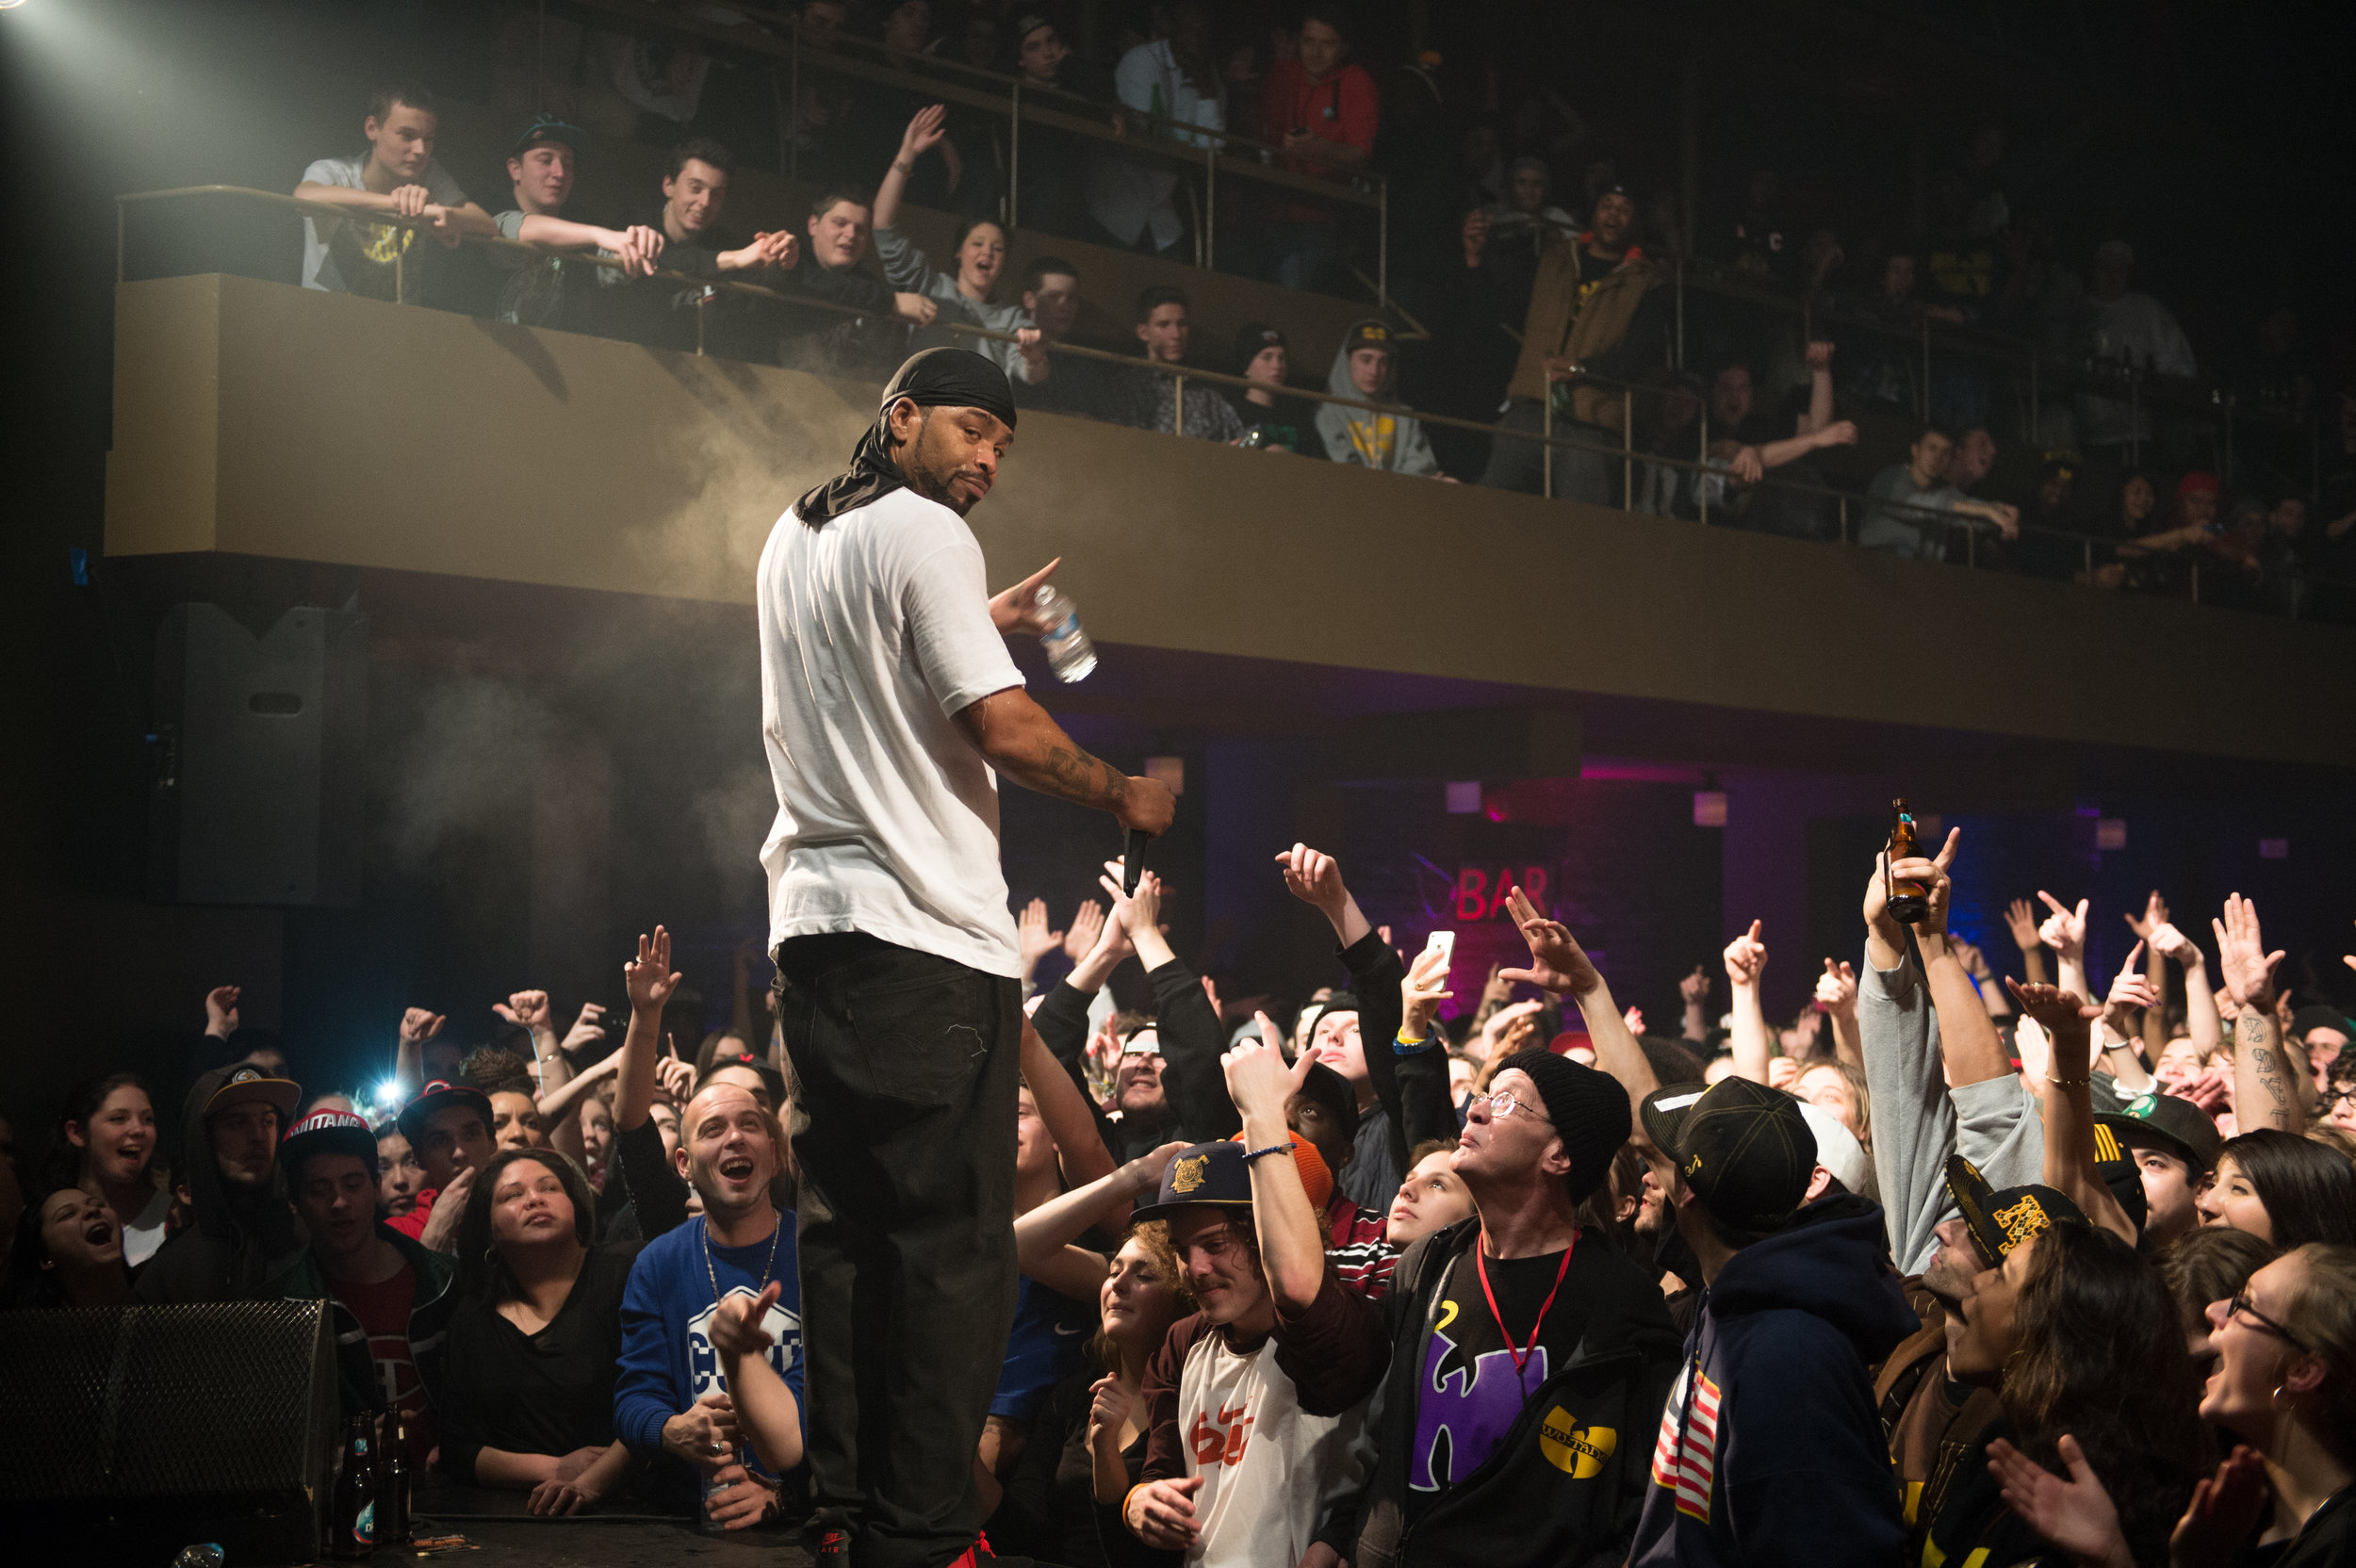 20130109_Method Man_0165.jpg